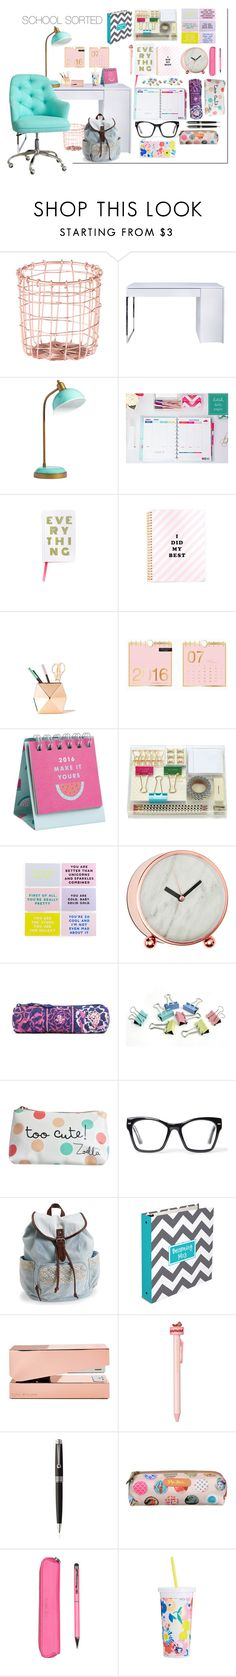 """""""School Sorted"""" by splash-of-collor ❤ liked on Polyvore featuring interior, interiors, interior design, home, home decor, interior decorating, Dot & Bo, TemaHome, PBteen and Kate Spade"""